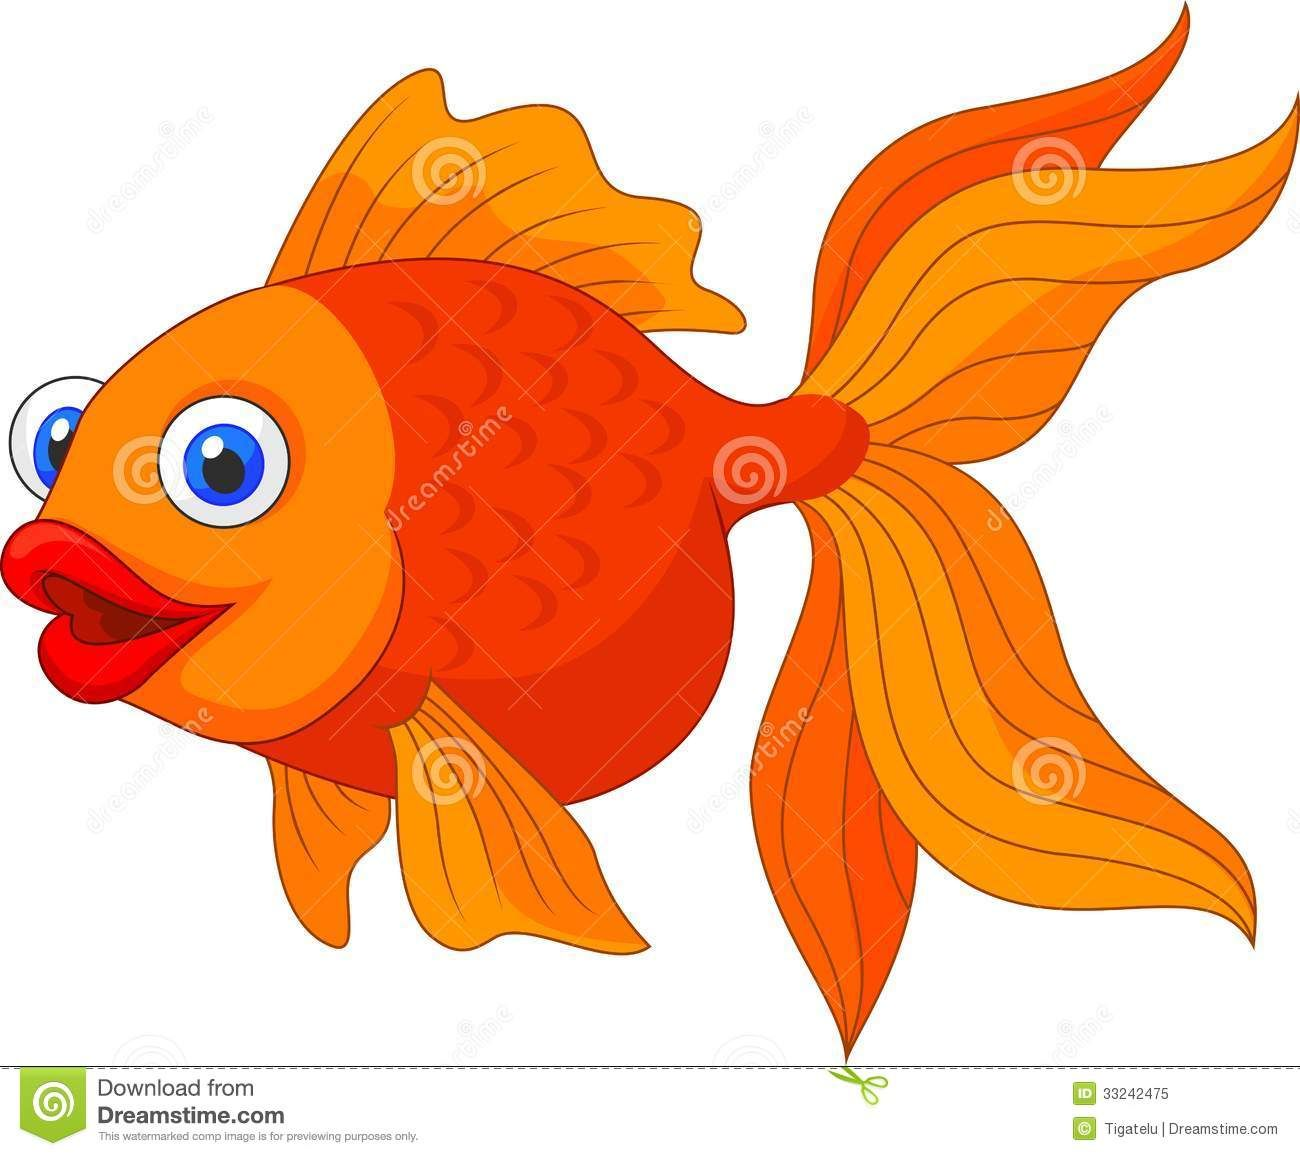 Cute Fish Clip Art | Royalty Free Stock Photo: Cute golden fish ...